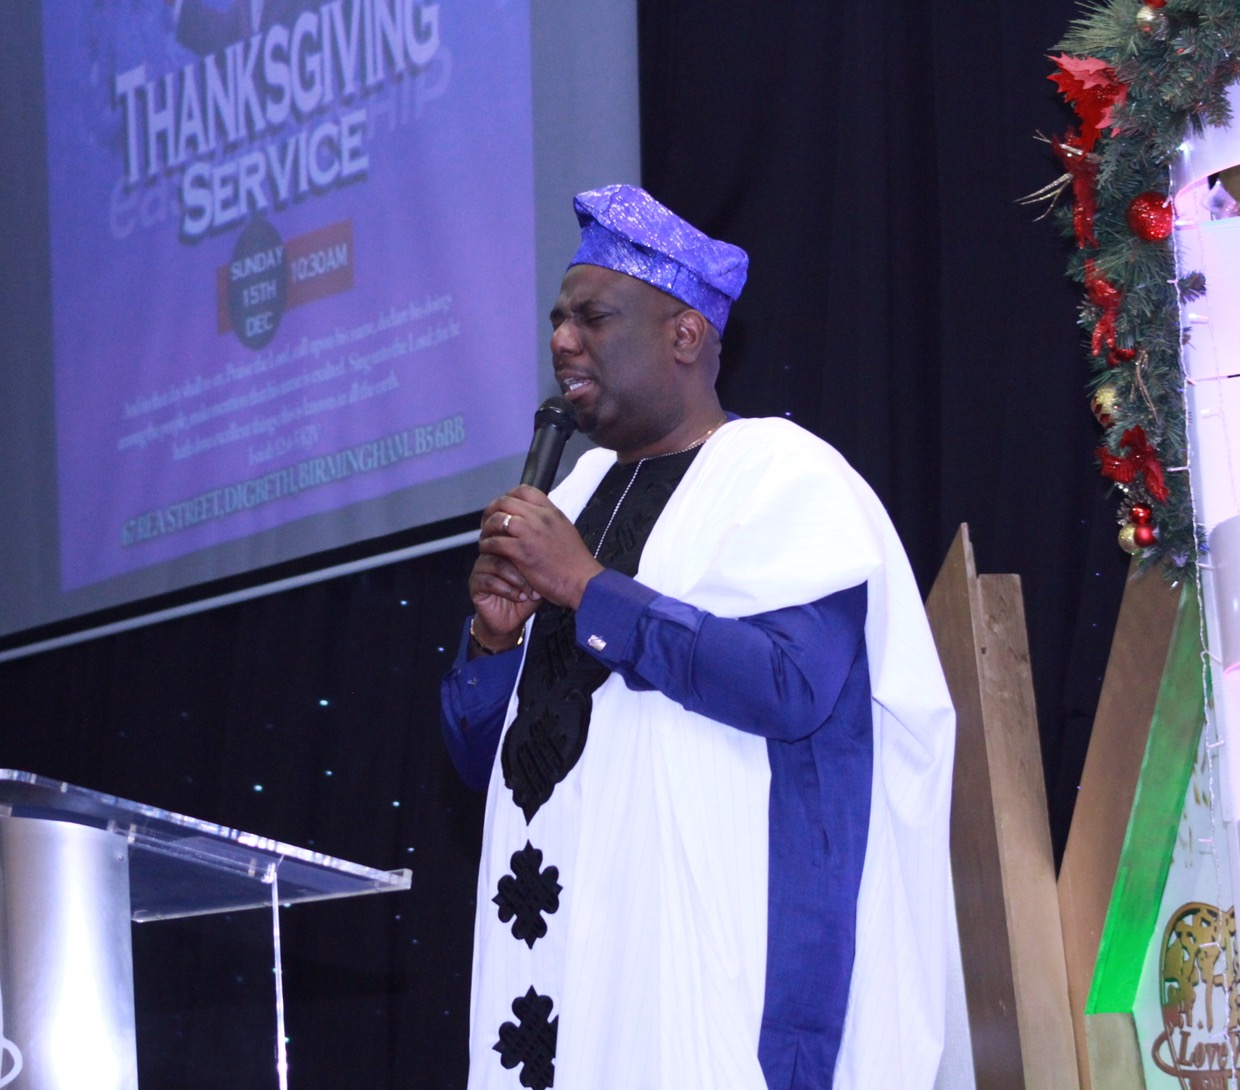 THANKSGIVING SERVICE 2019 Psalms 103:2